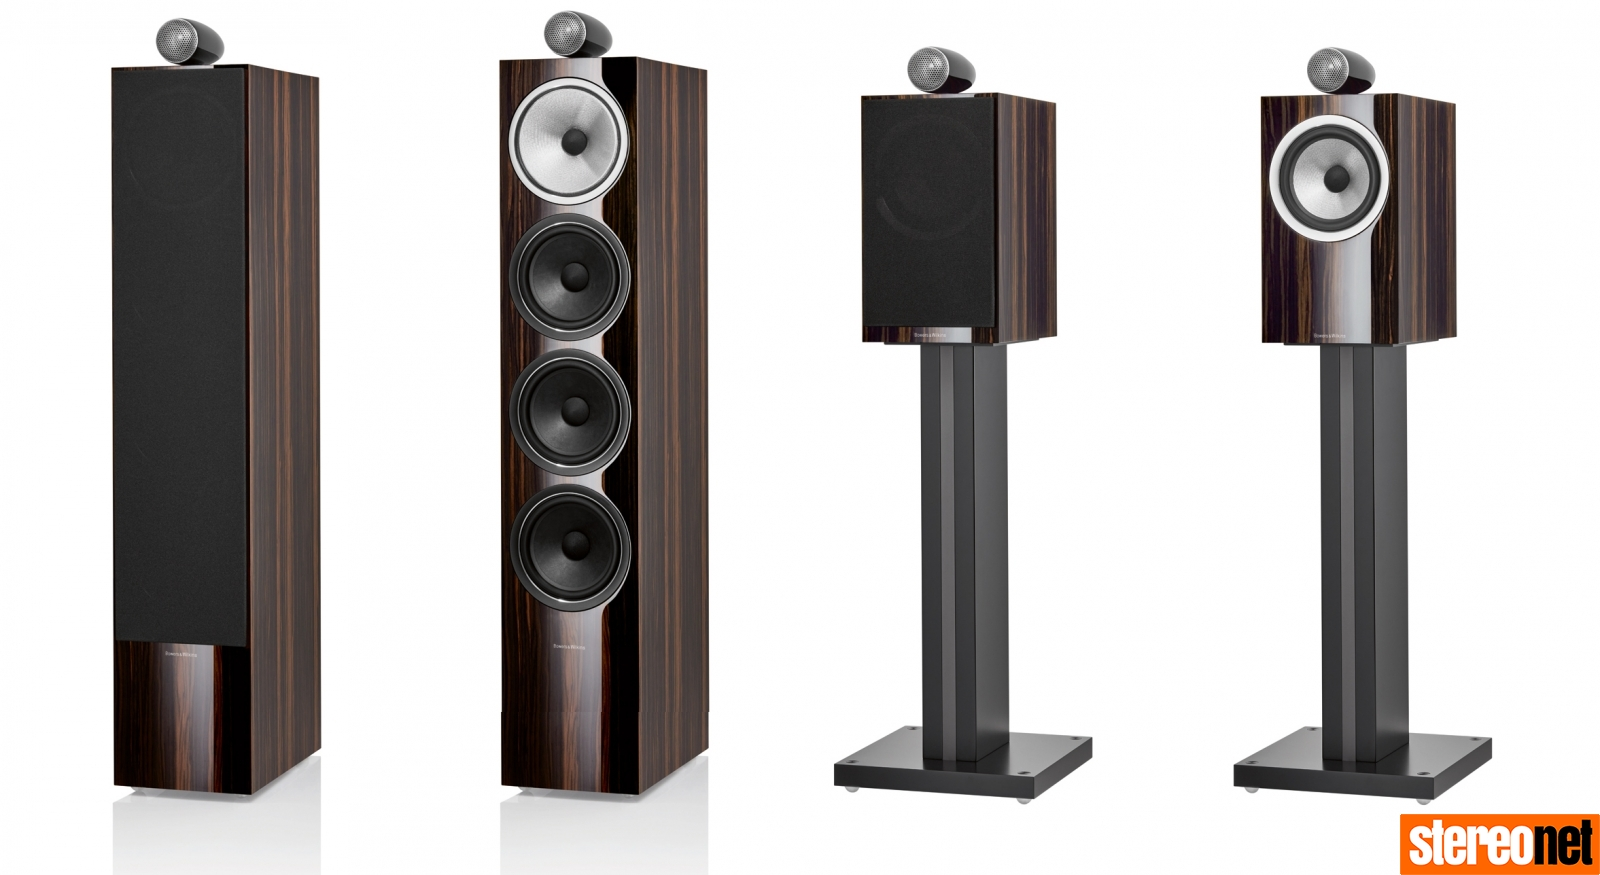 Bowers & Wilkins 702 705 Signature Speakers Review